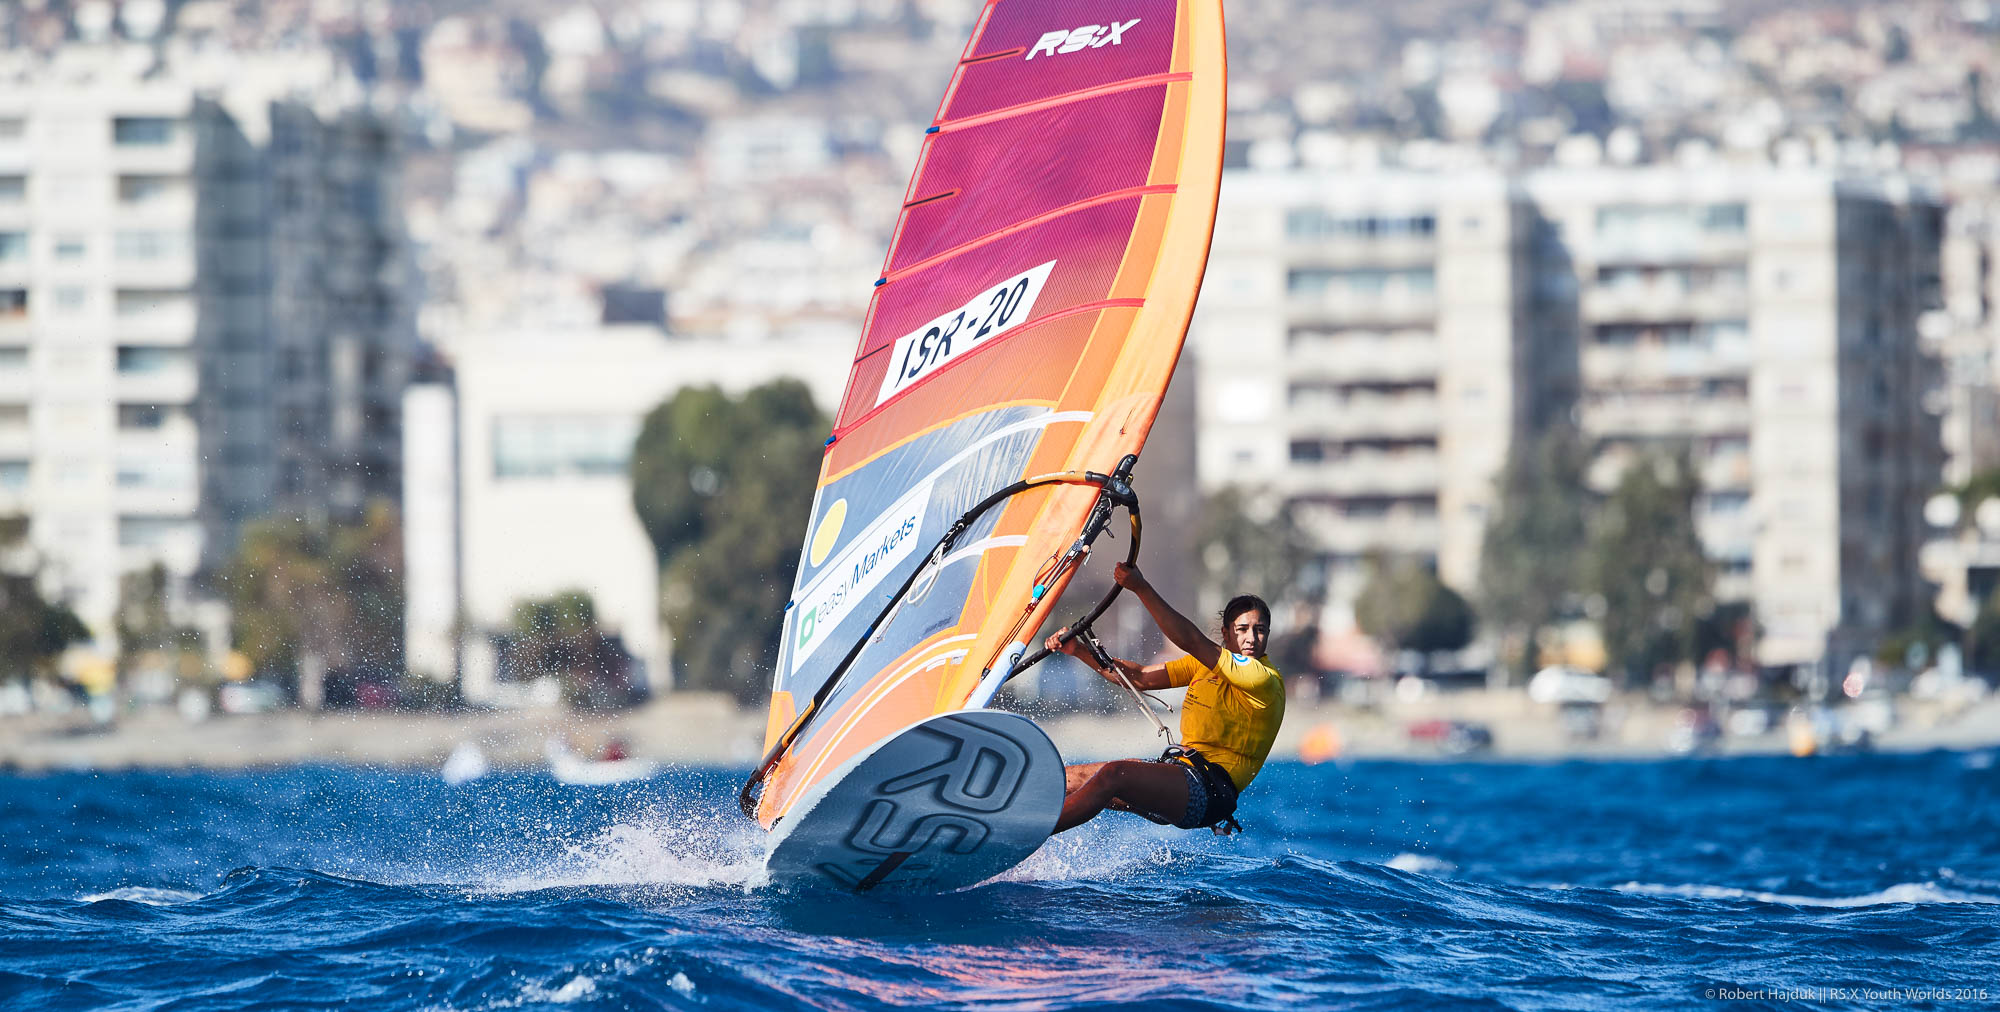 RS:X Youth World Championship || 2016-11-21, Limassol, Cyprus || © Copyright 2016 || Robert Hajduk - ShutterSail.com || All Rights Reserved ||